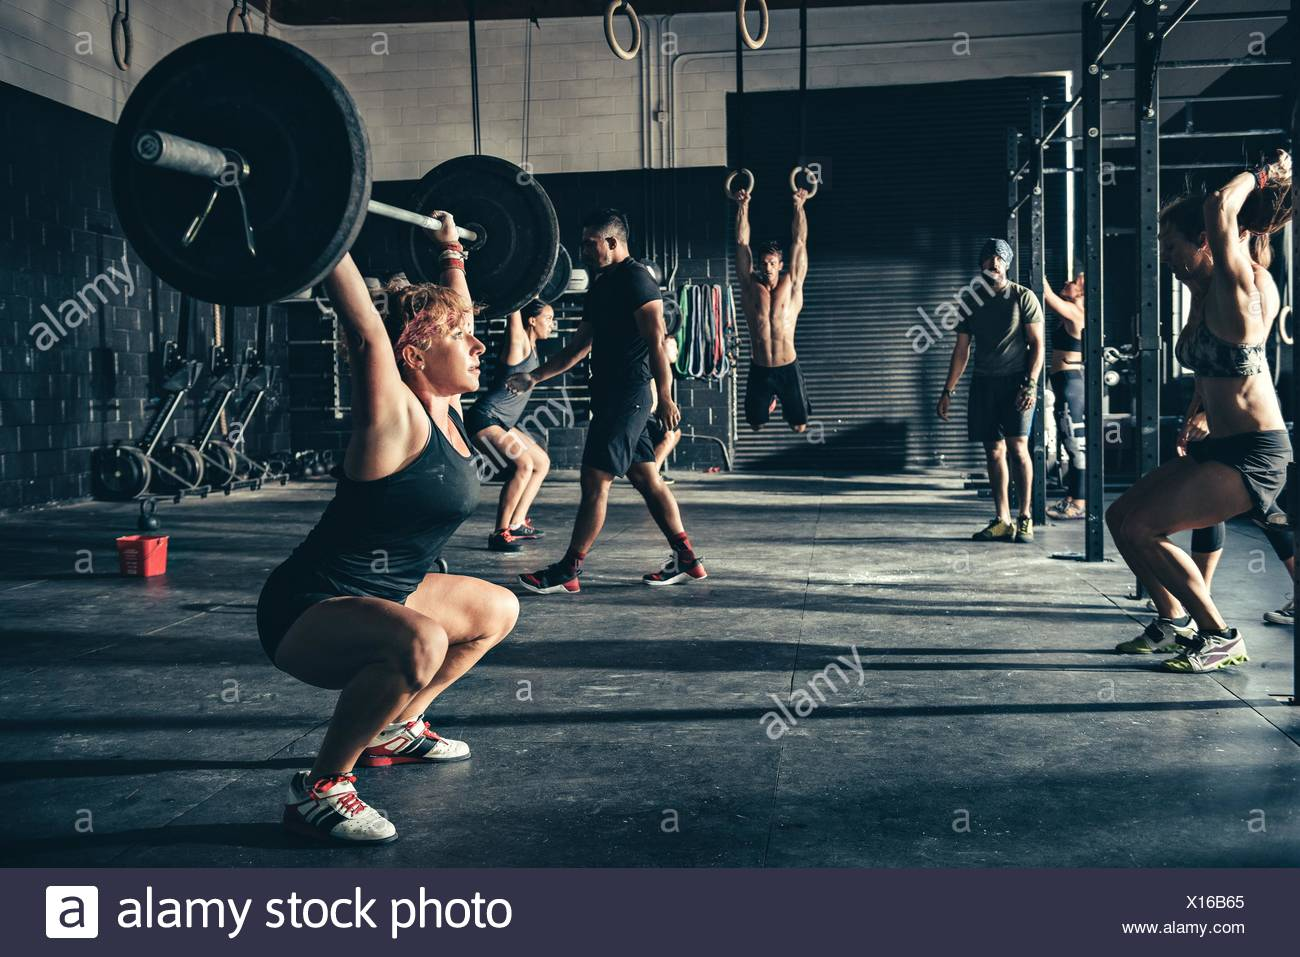 Woman crouching with barbell in gym - Stock Image